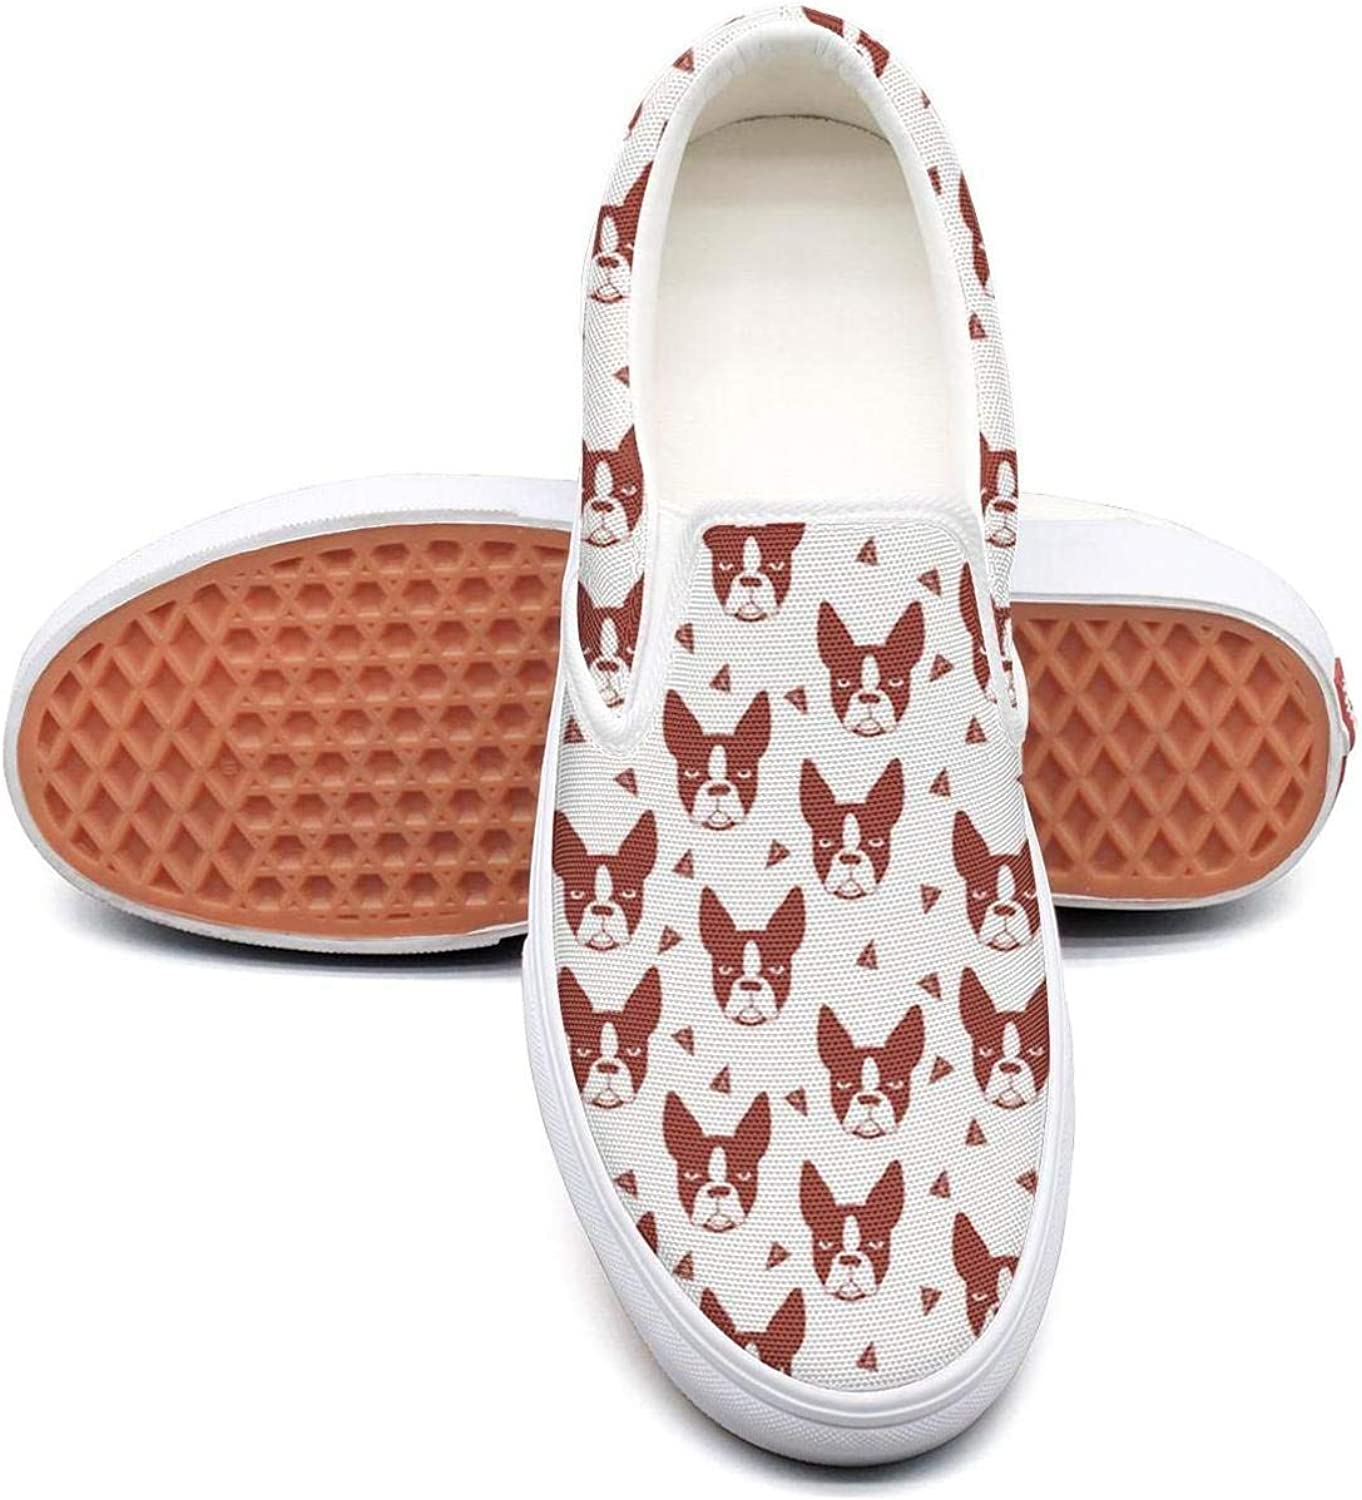 Feenfling Boston Terrier Cute Dog Womens Casual Slip on Low Top Canvas Deck shoes